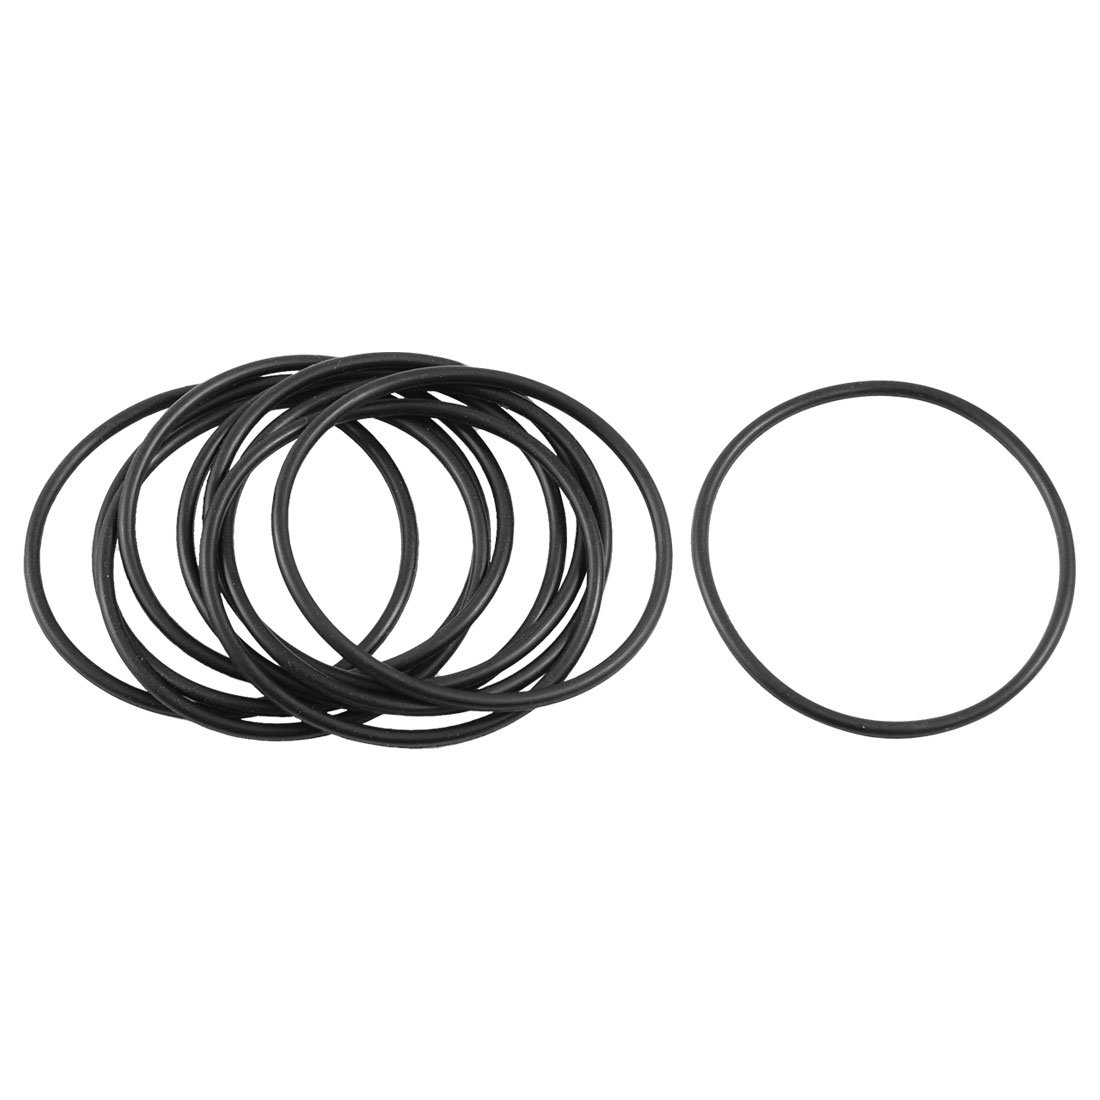 10 Pcs 40mm x 44mm x 2mm Nitrile Rubber Sealing O Ring Gasket Washer by sourcing map (Image #1)